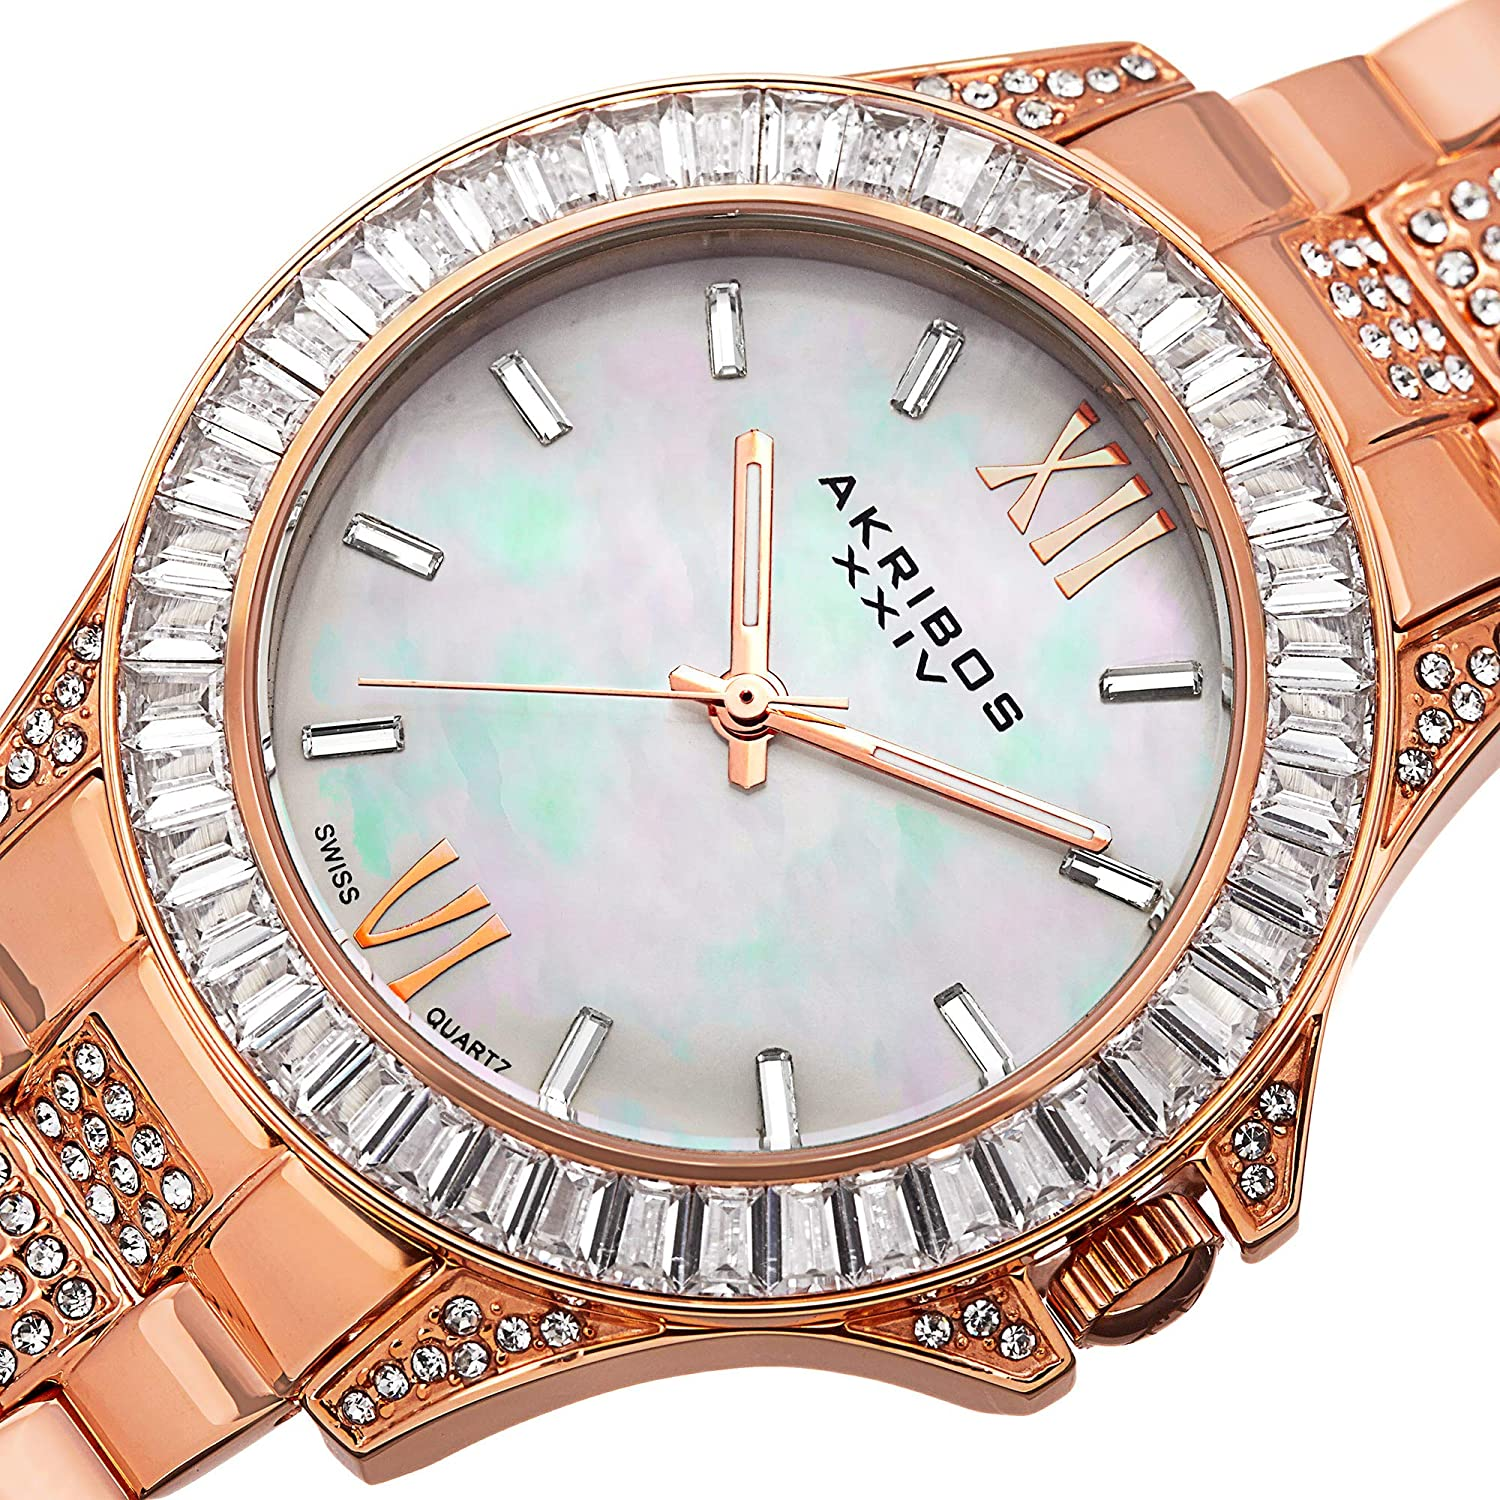 Akribos XXIV Women's 'Impeccable' Swiss Quartz Watch - Mother-of-Pearl Dial Large Baguette Crystals Bezel On Stainless Steel Bracelet - AK670 Rose Gold